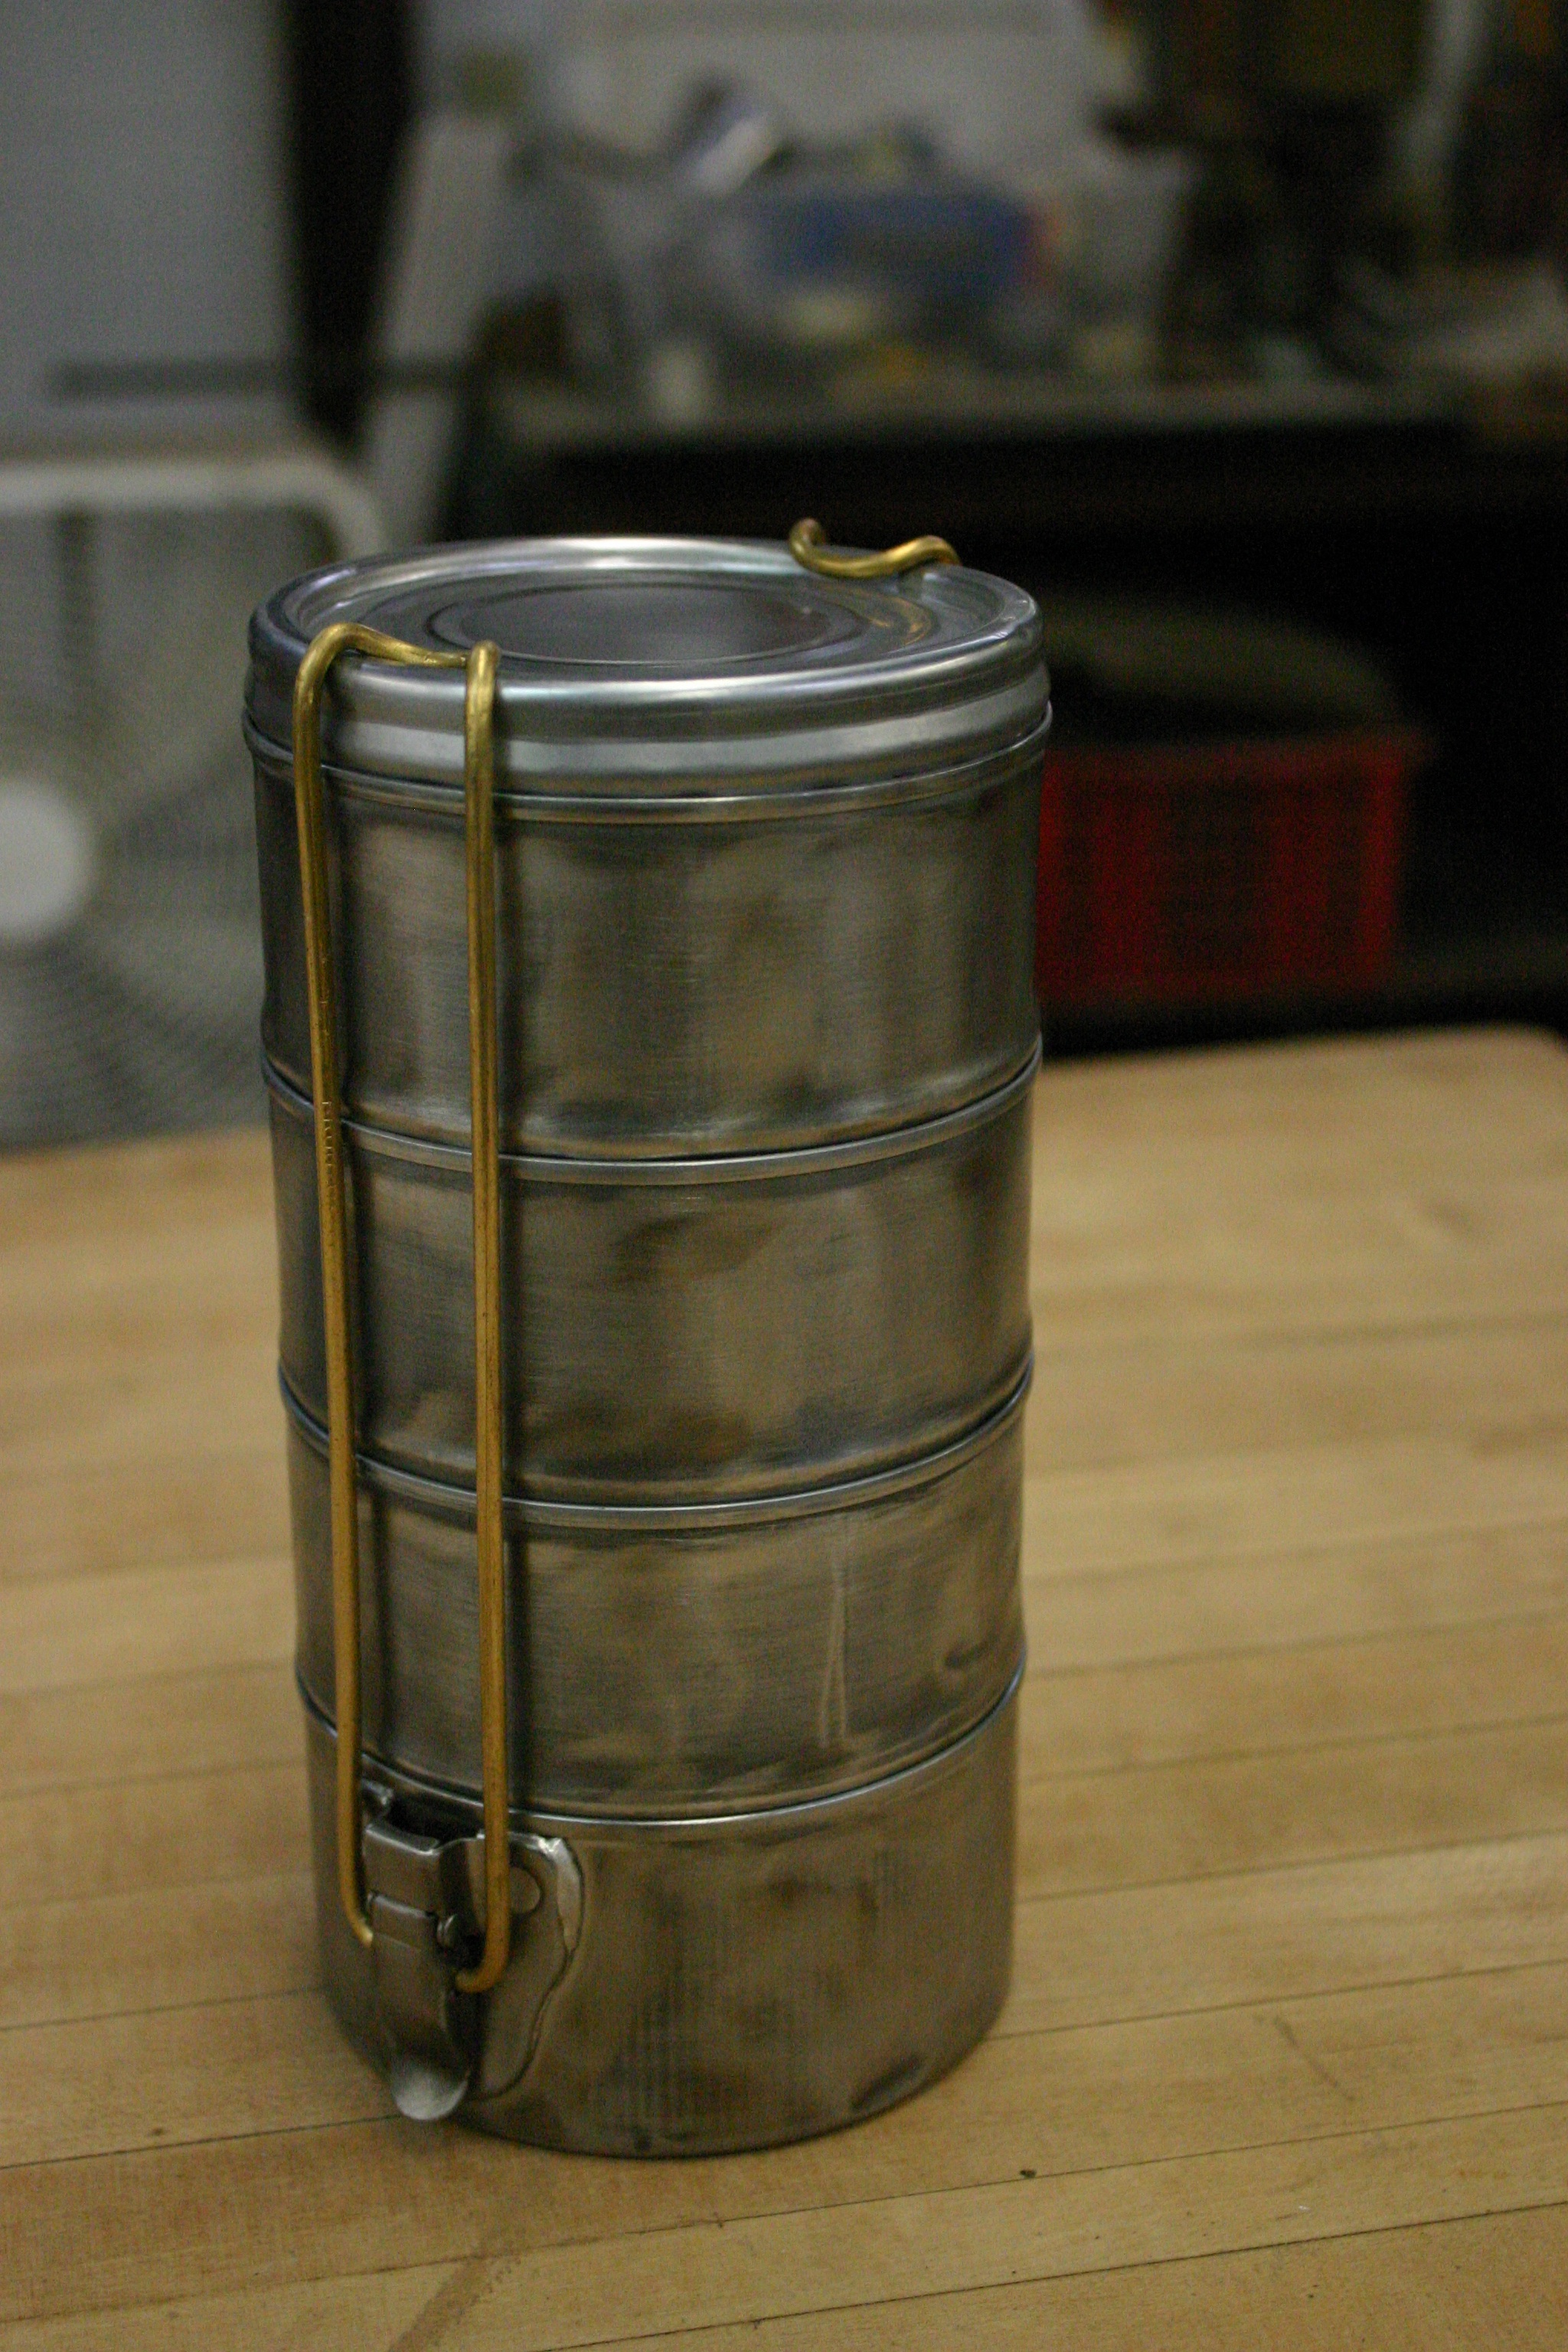 Tiffin Box from Tuna Cans